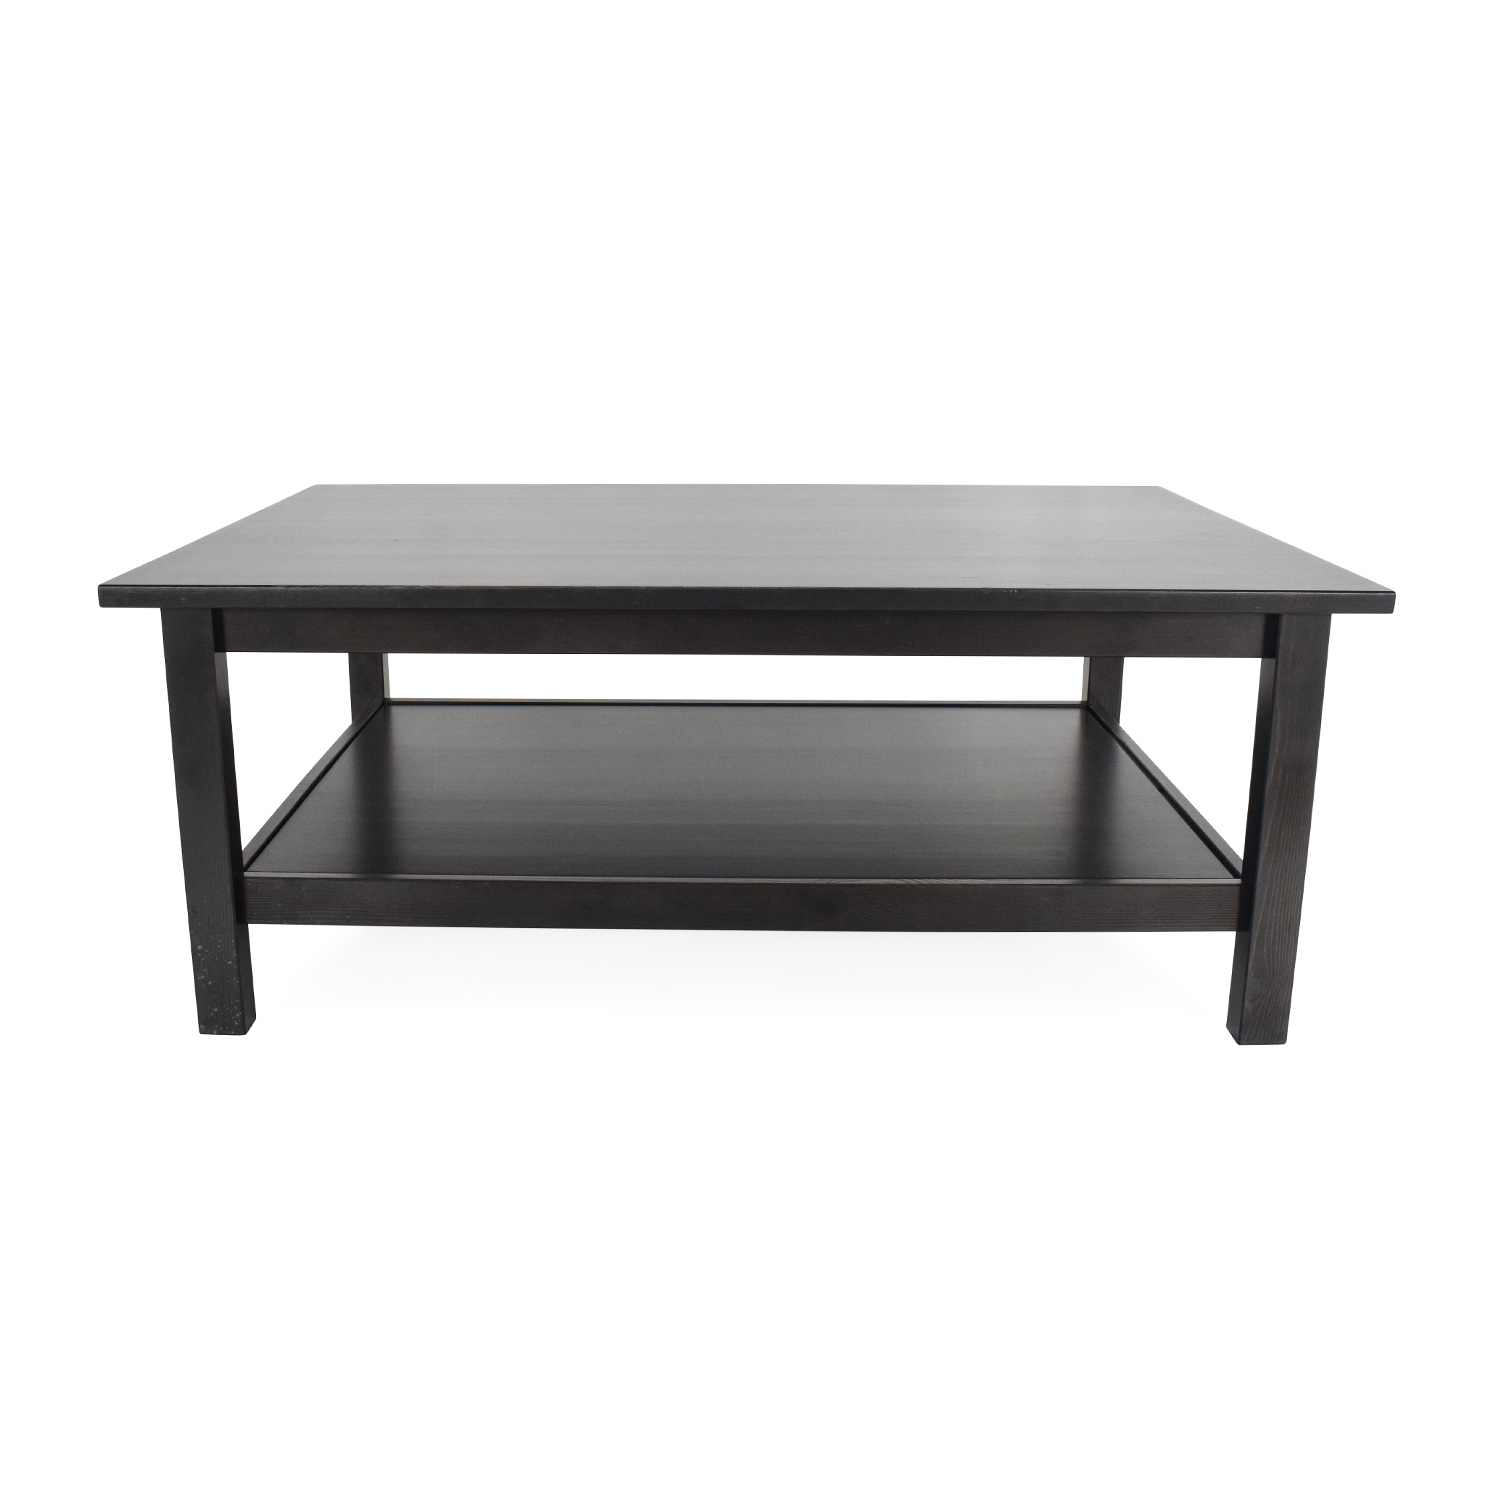 Charmant Buy Dark Chocolate Coffee Table IKEA ...